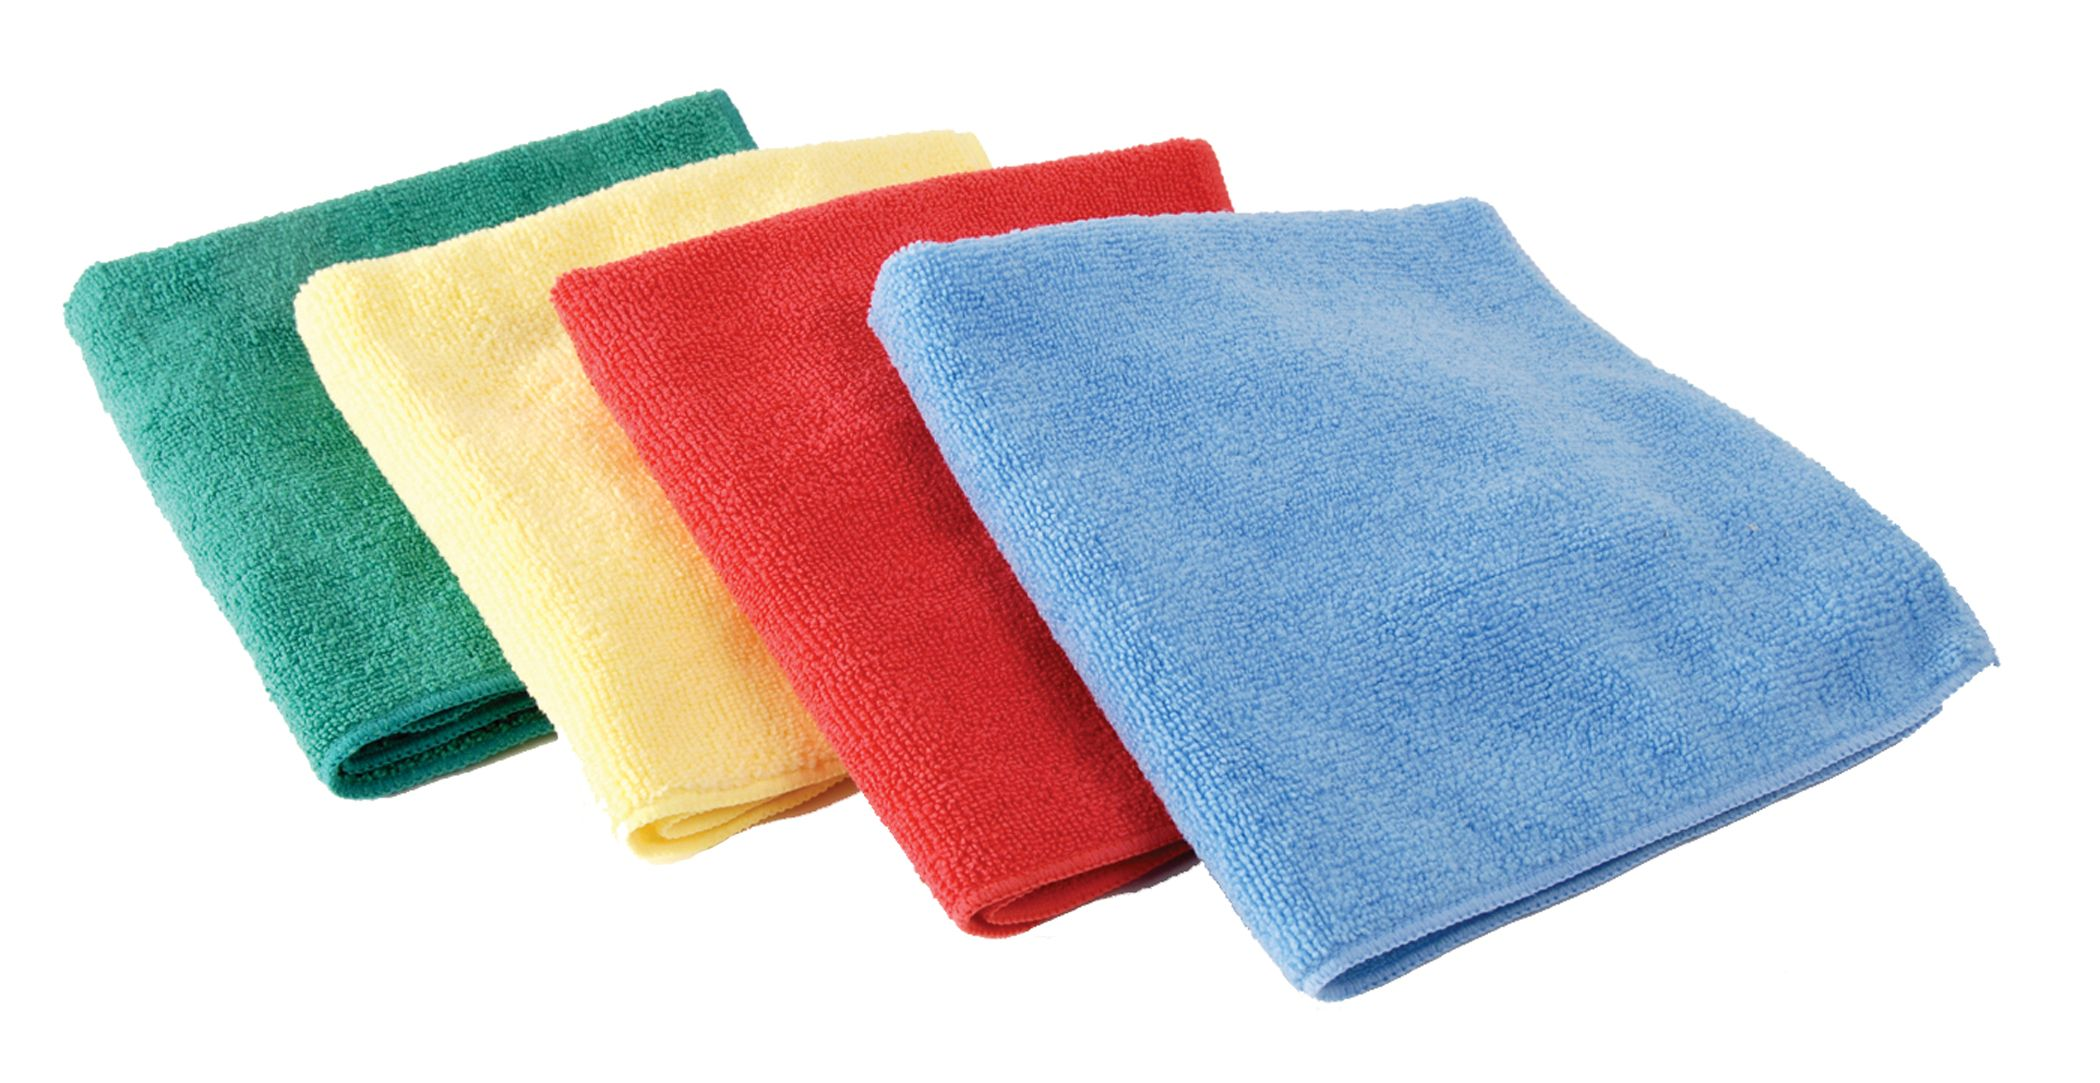 Ettore MicroSwipe allpurpose microfiber cleaning cloths